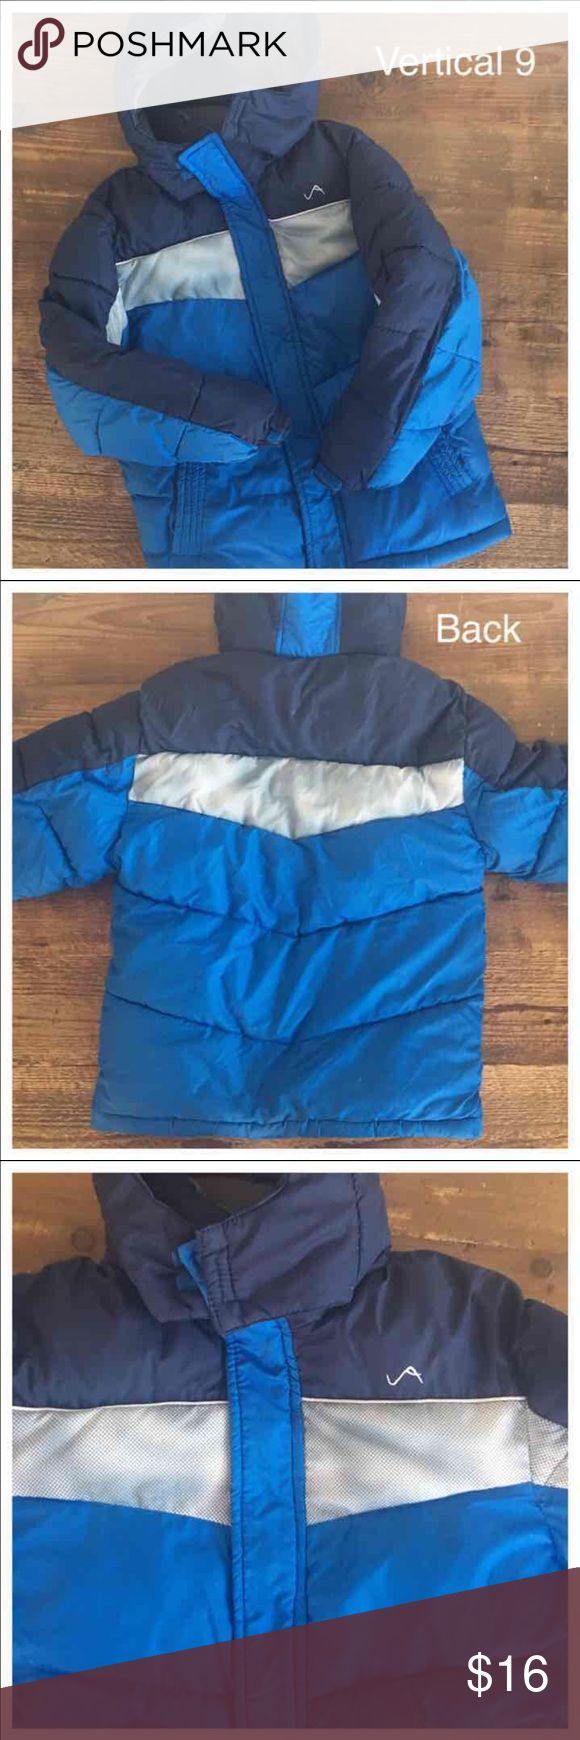 Vertical 9 awesome jacket, coat Gorgeous colbalt blue and silver boy's winter coat in excellent condition. This gorgeous coat was only wore one time and was $40 new!   SIZE 6-7  SAVE MORE NOW AND BUNDLE! vertical 9 Jackets & Coats Puffers